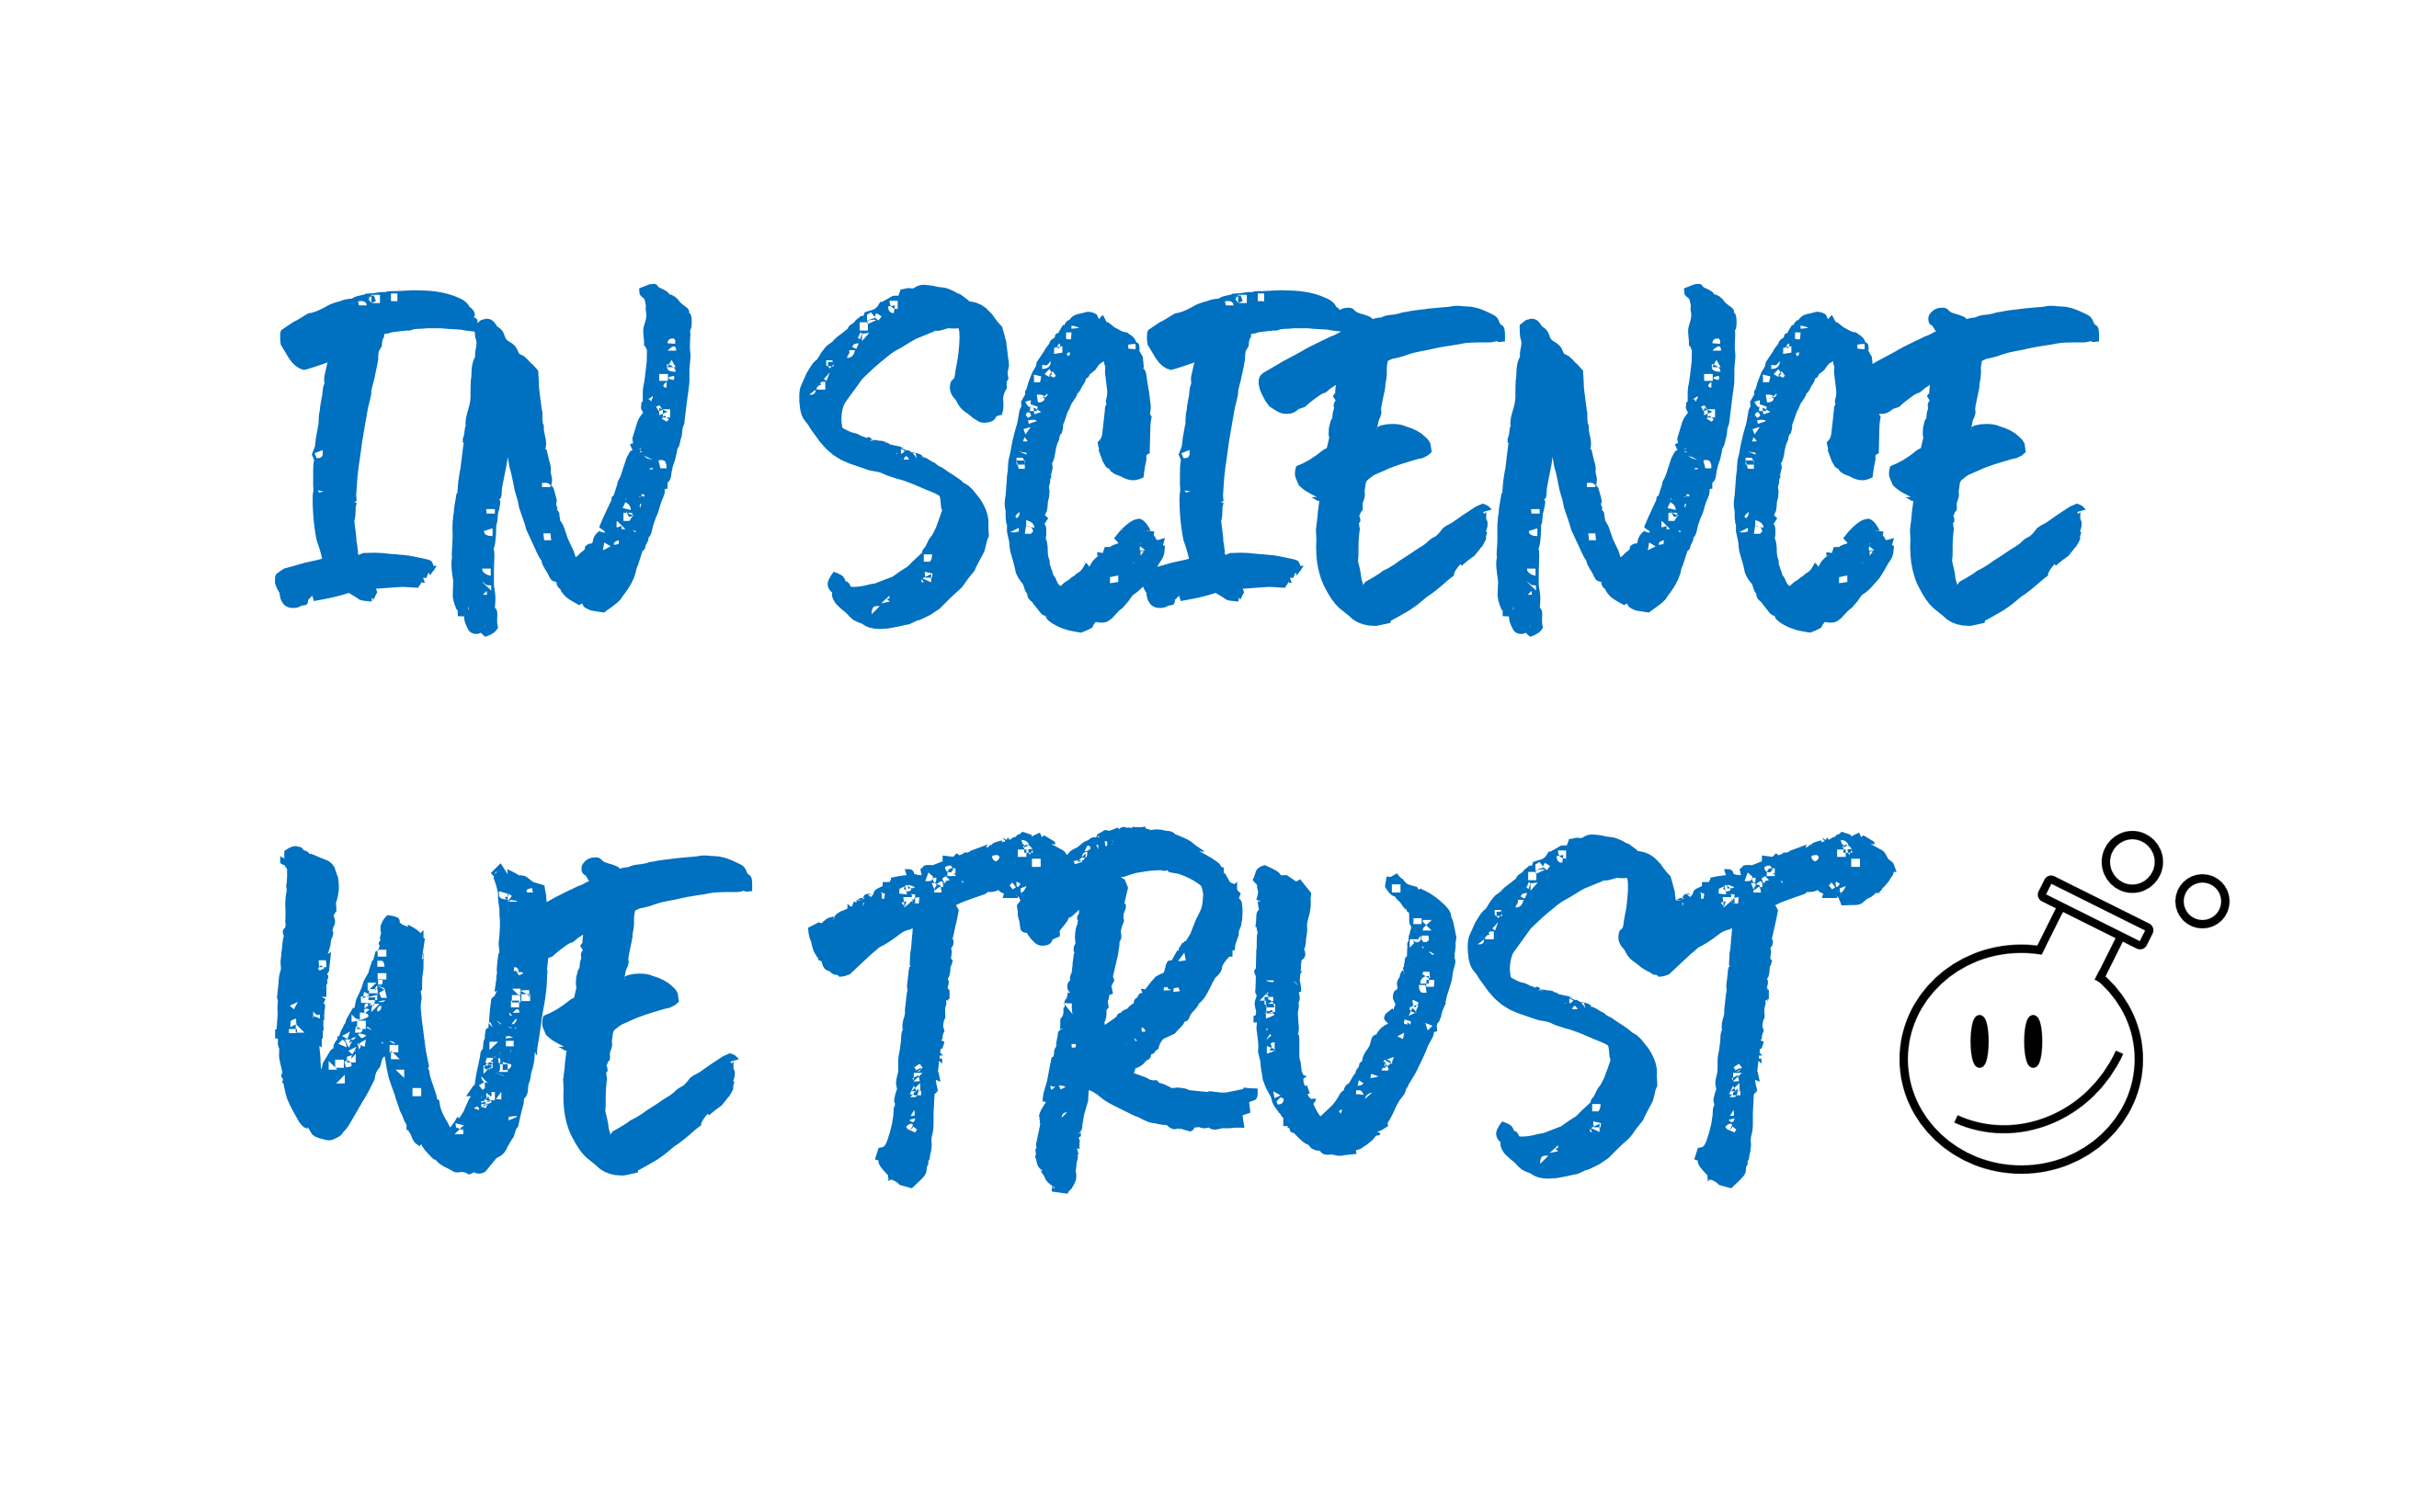 image with text in science we trust in pink